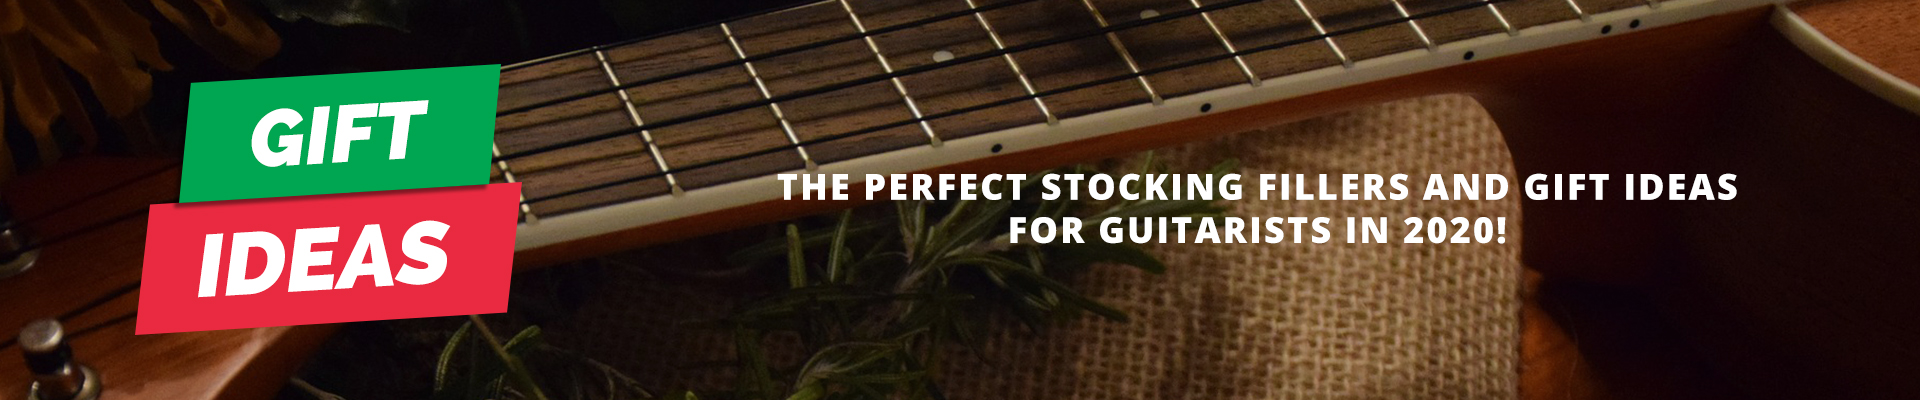 Gift ideas and stocking fillers for guitarists 2020!